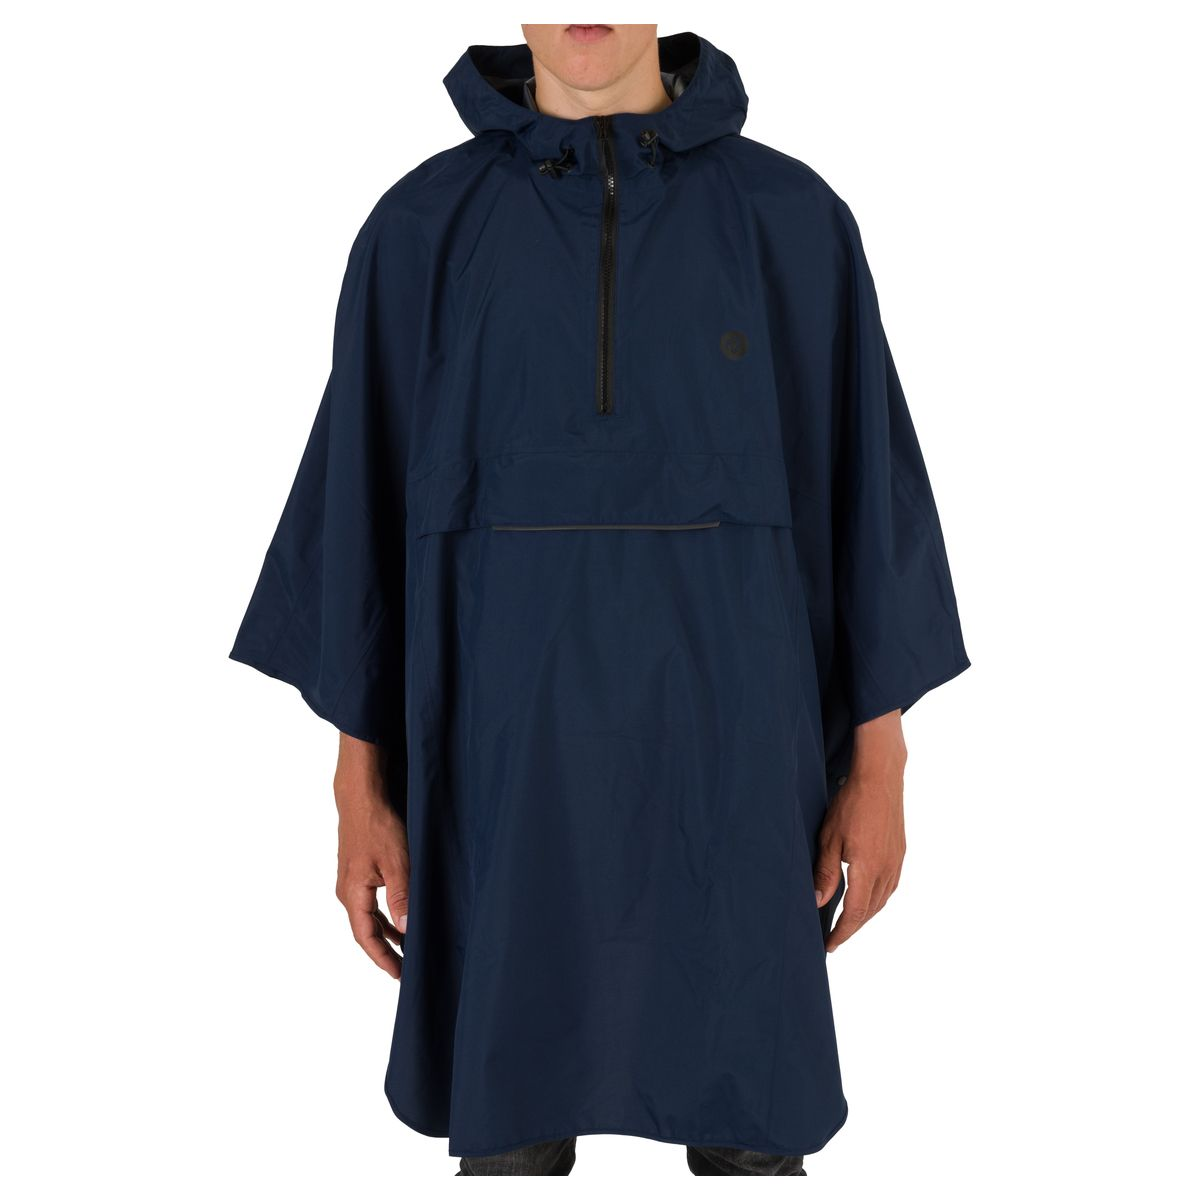 Grant Regenponcho Essential fit example